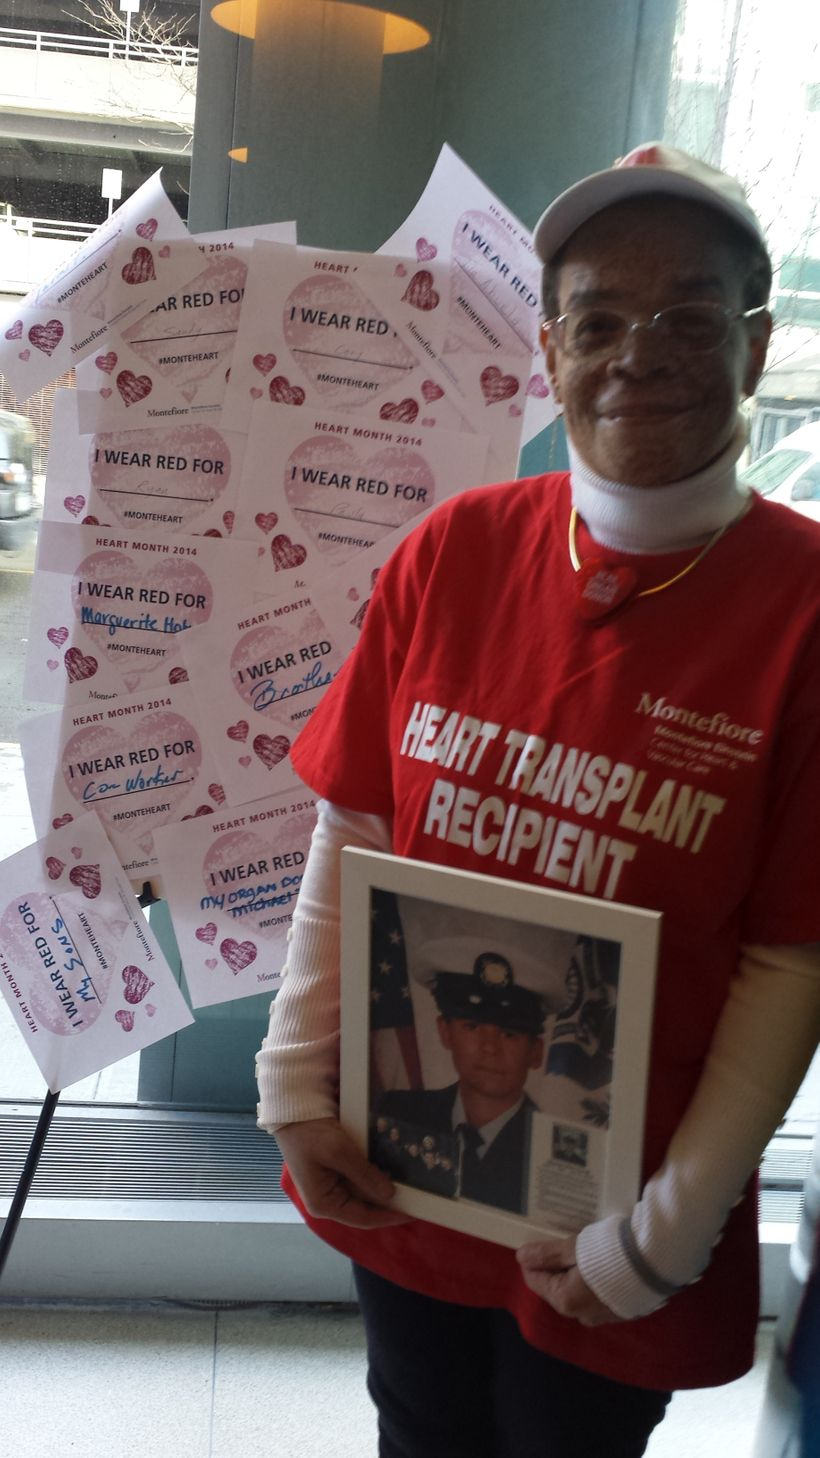 Heart Transplant Recipient